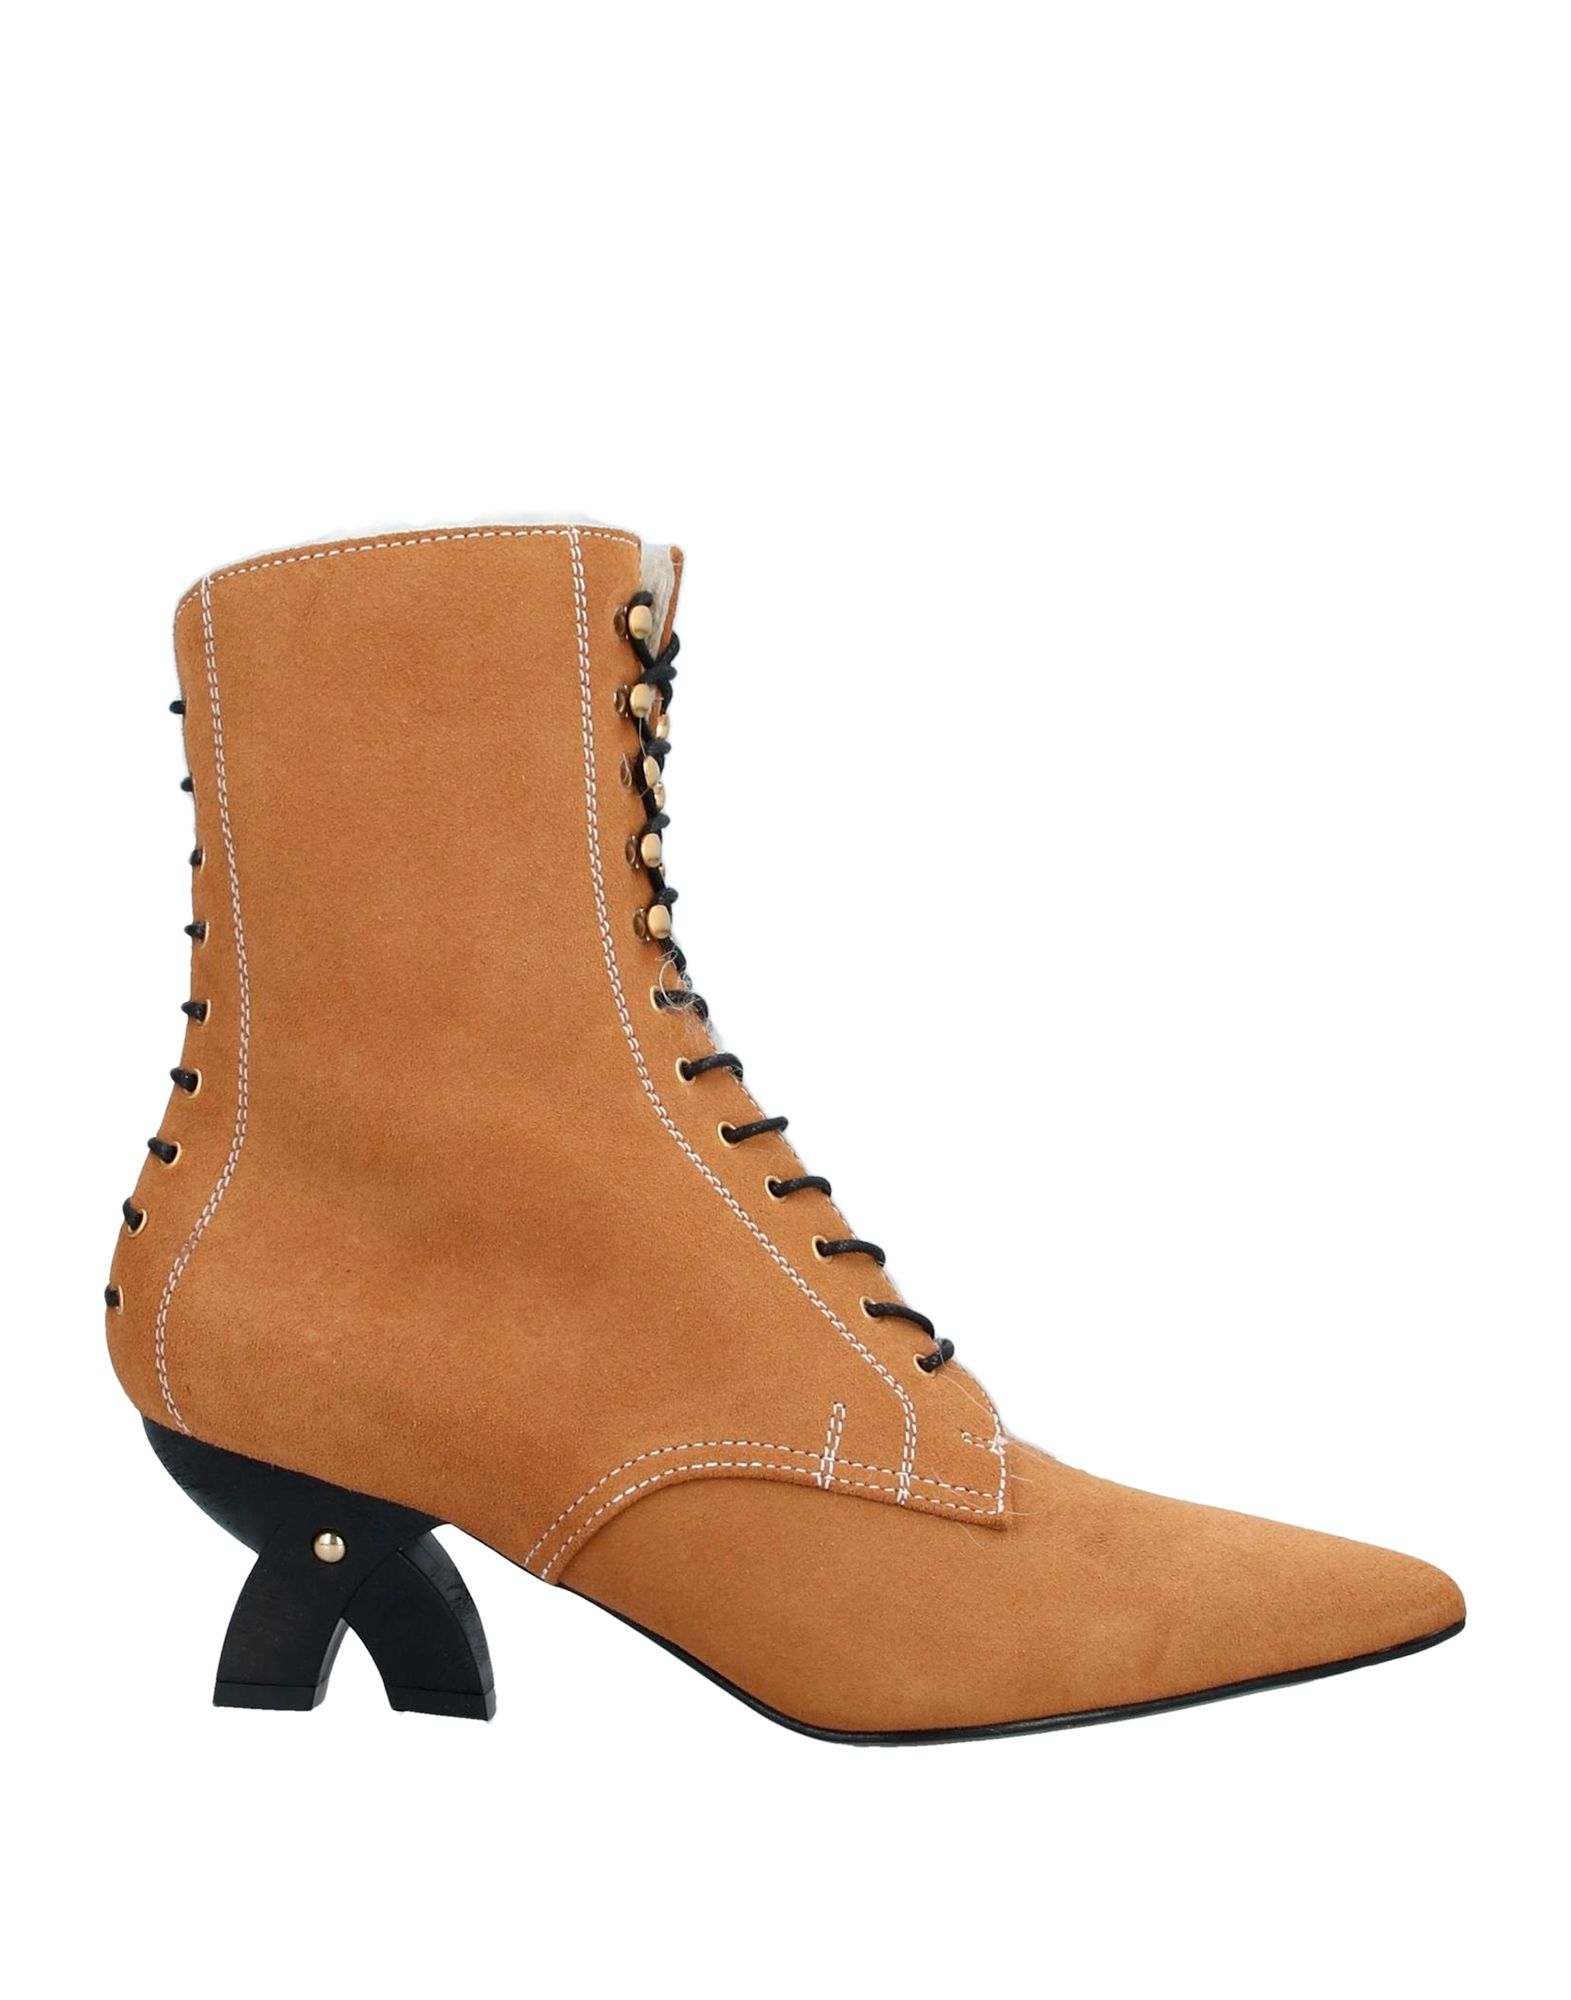 LOEWE Ankle boots. no appliqués, solid color, laces, narrow toeline, sculpted heel, lined in hair, leather sole, contains non-textile parts of animal origin. Shearling